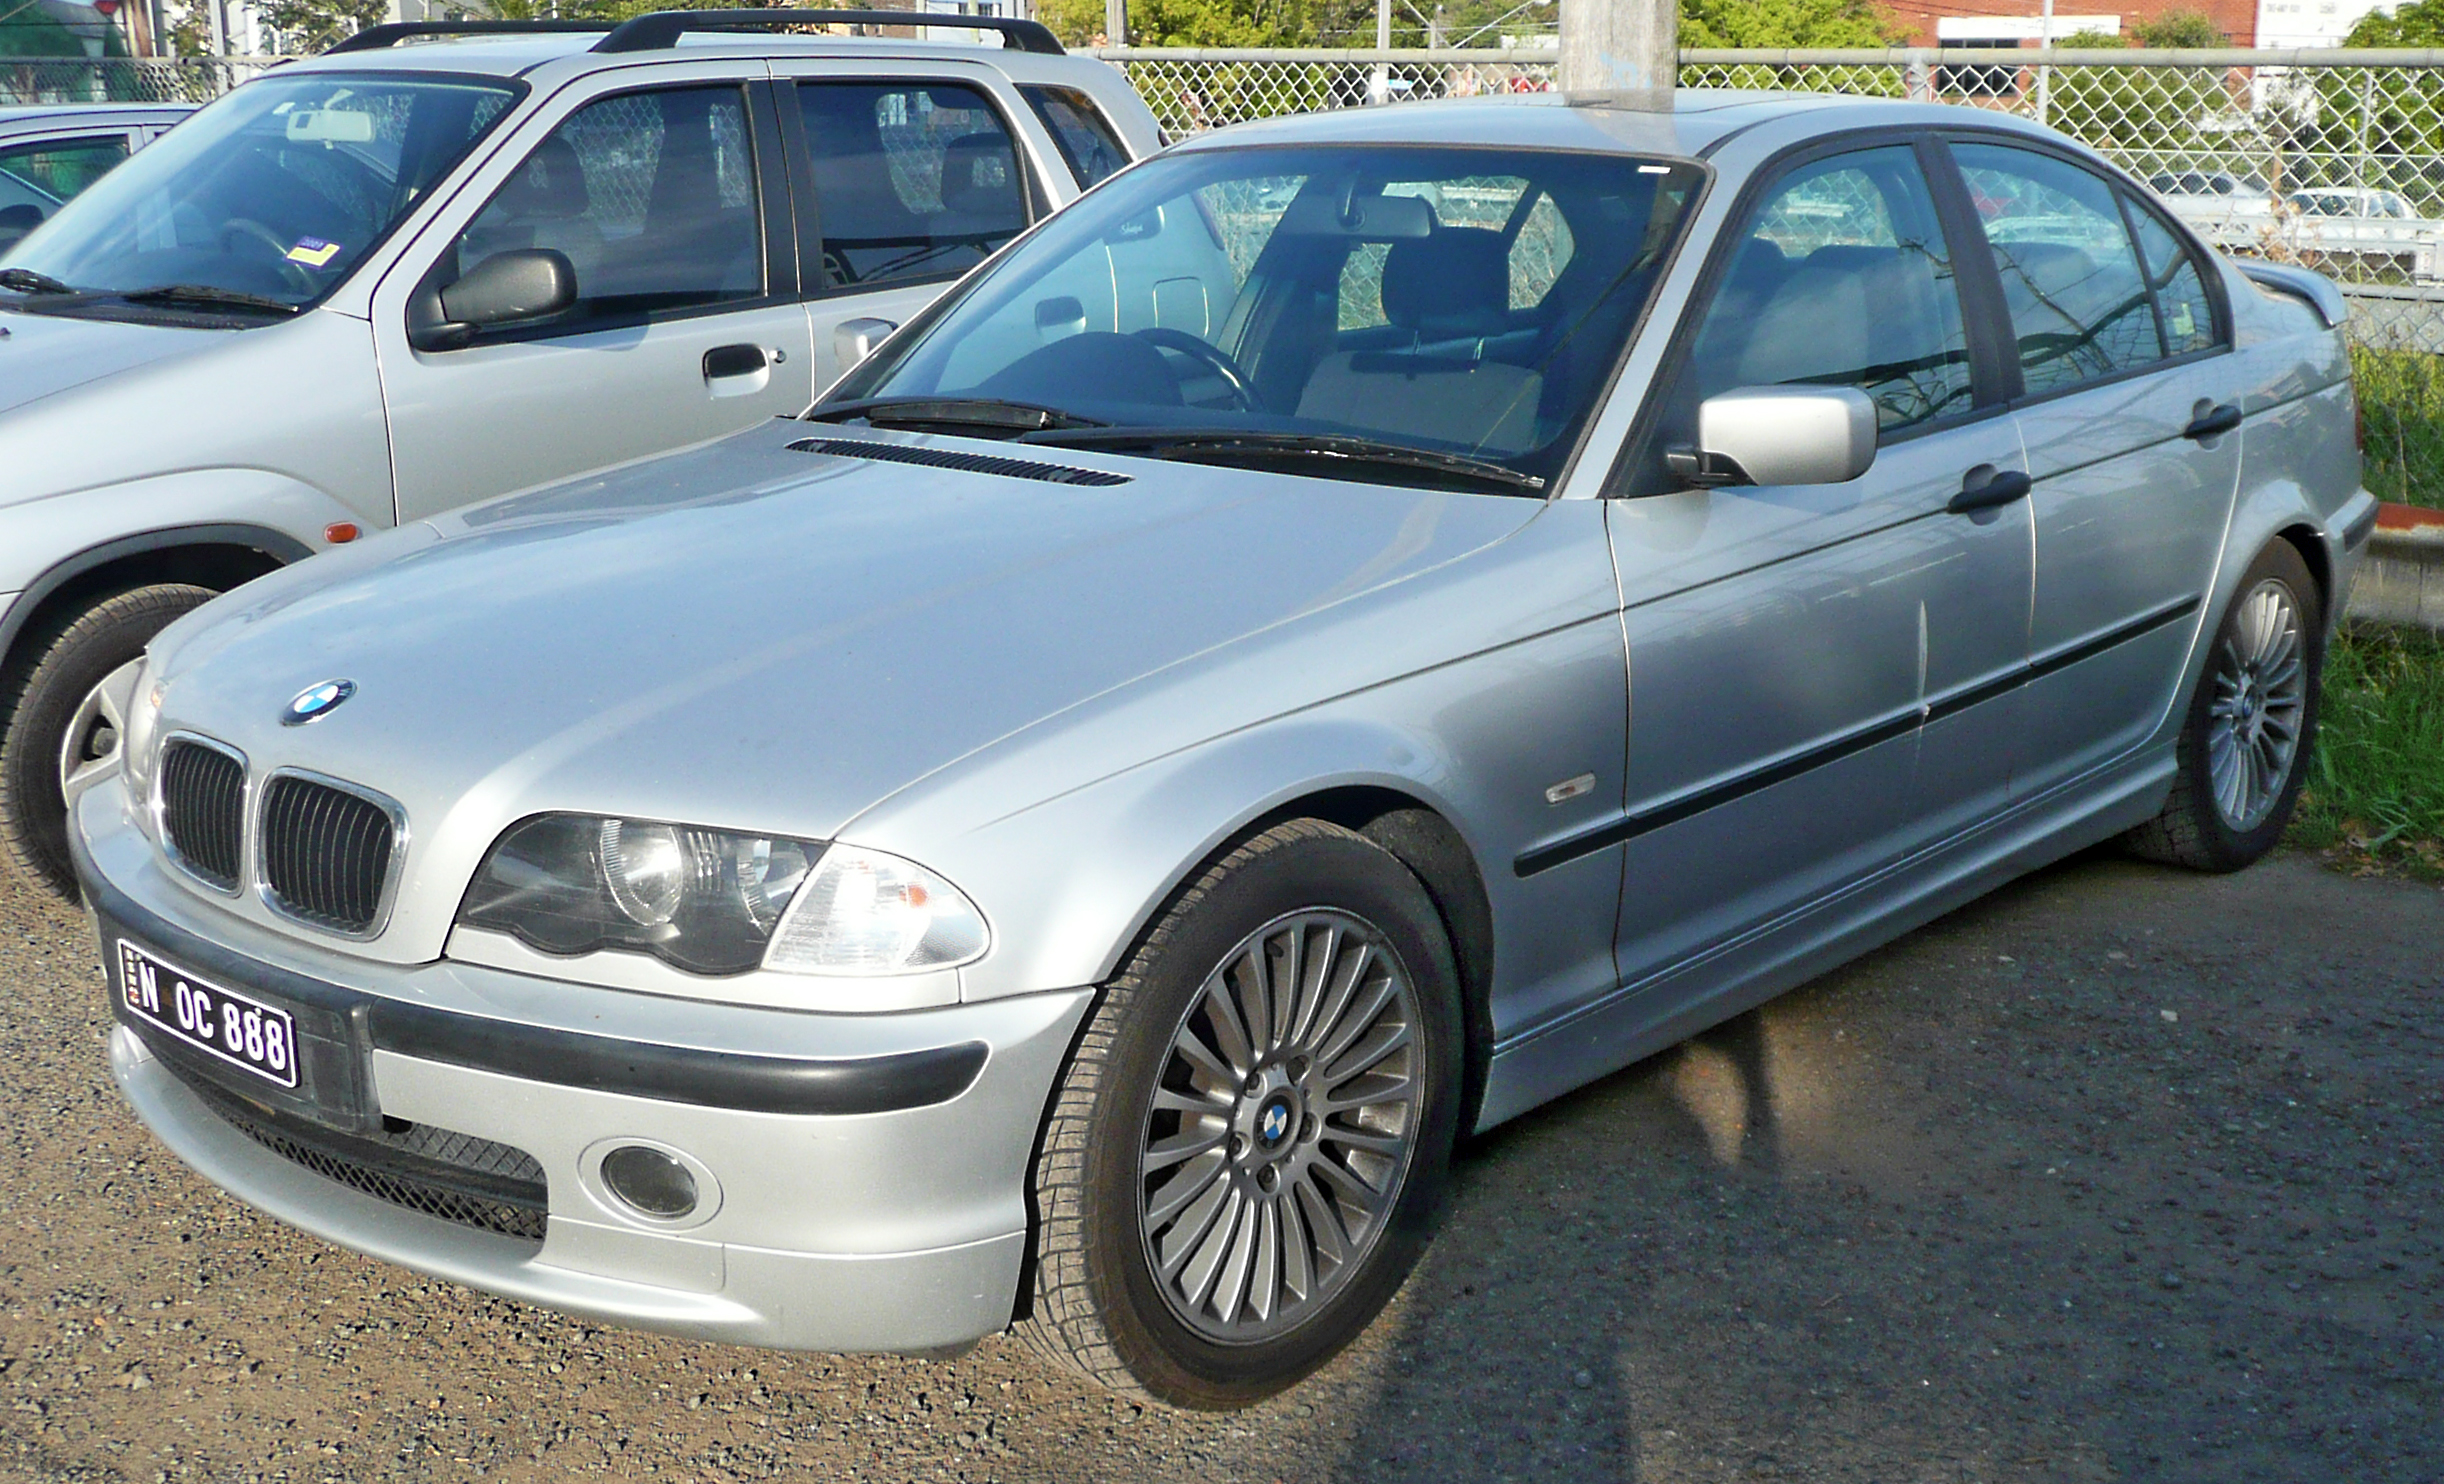 File:1998 2001 BMW 318i (E46) sedan 01.   Wikimedia Commons